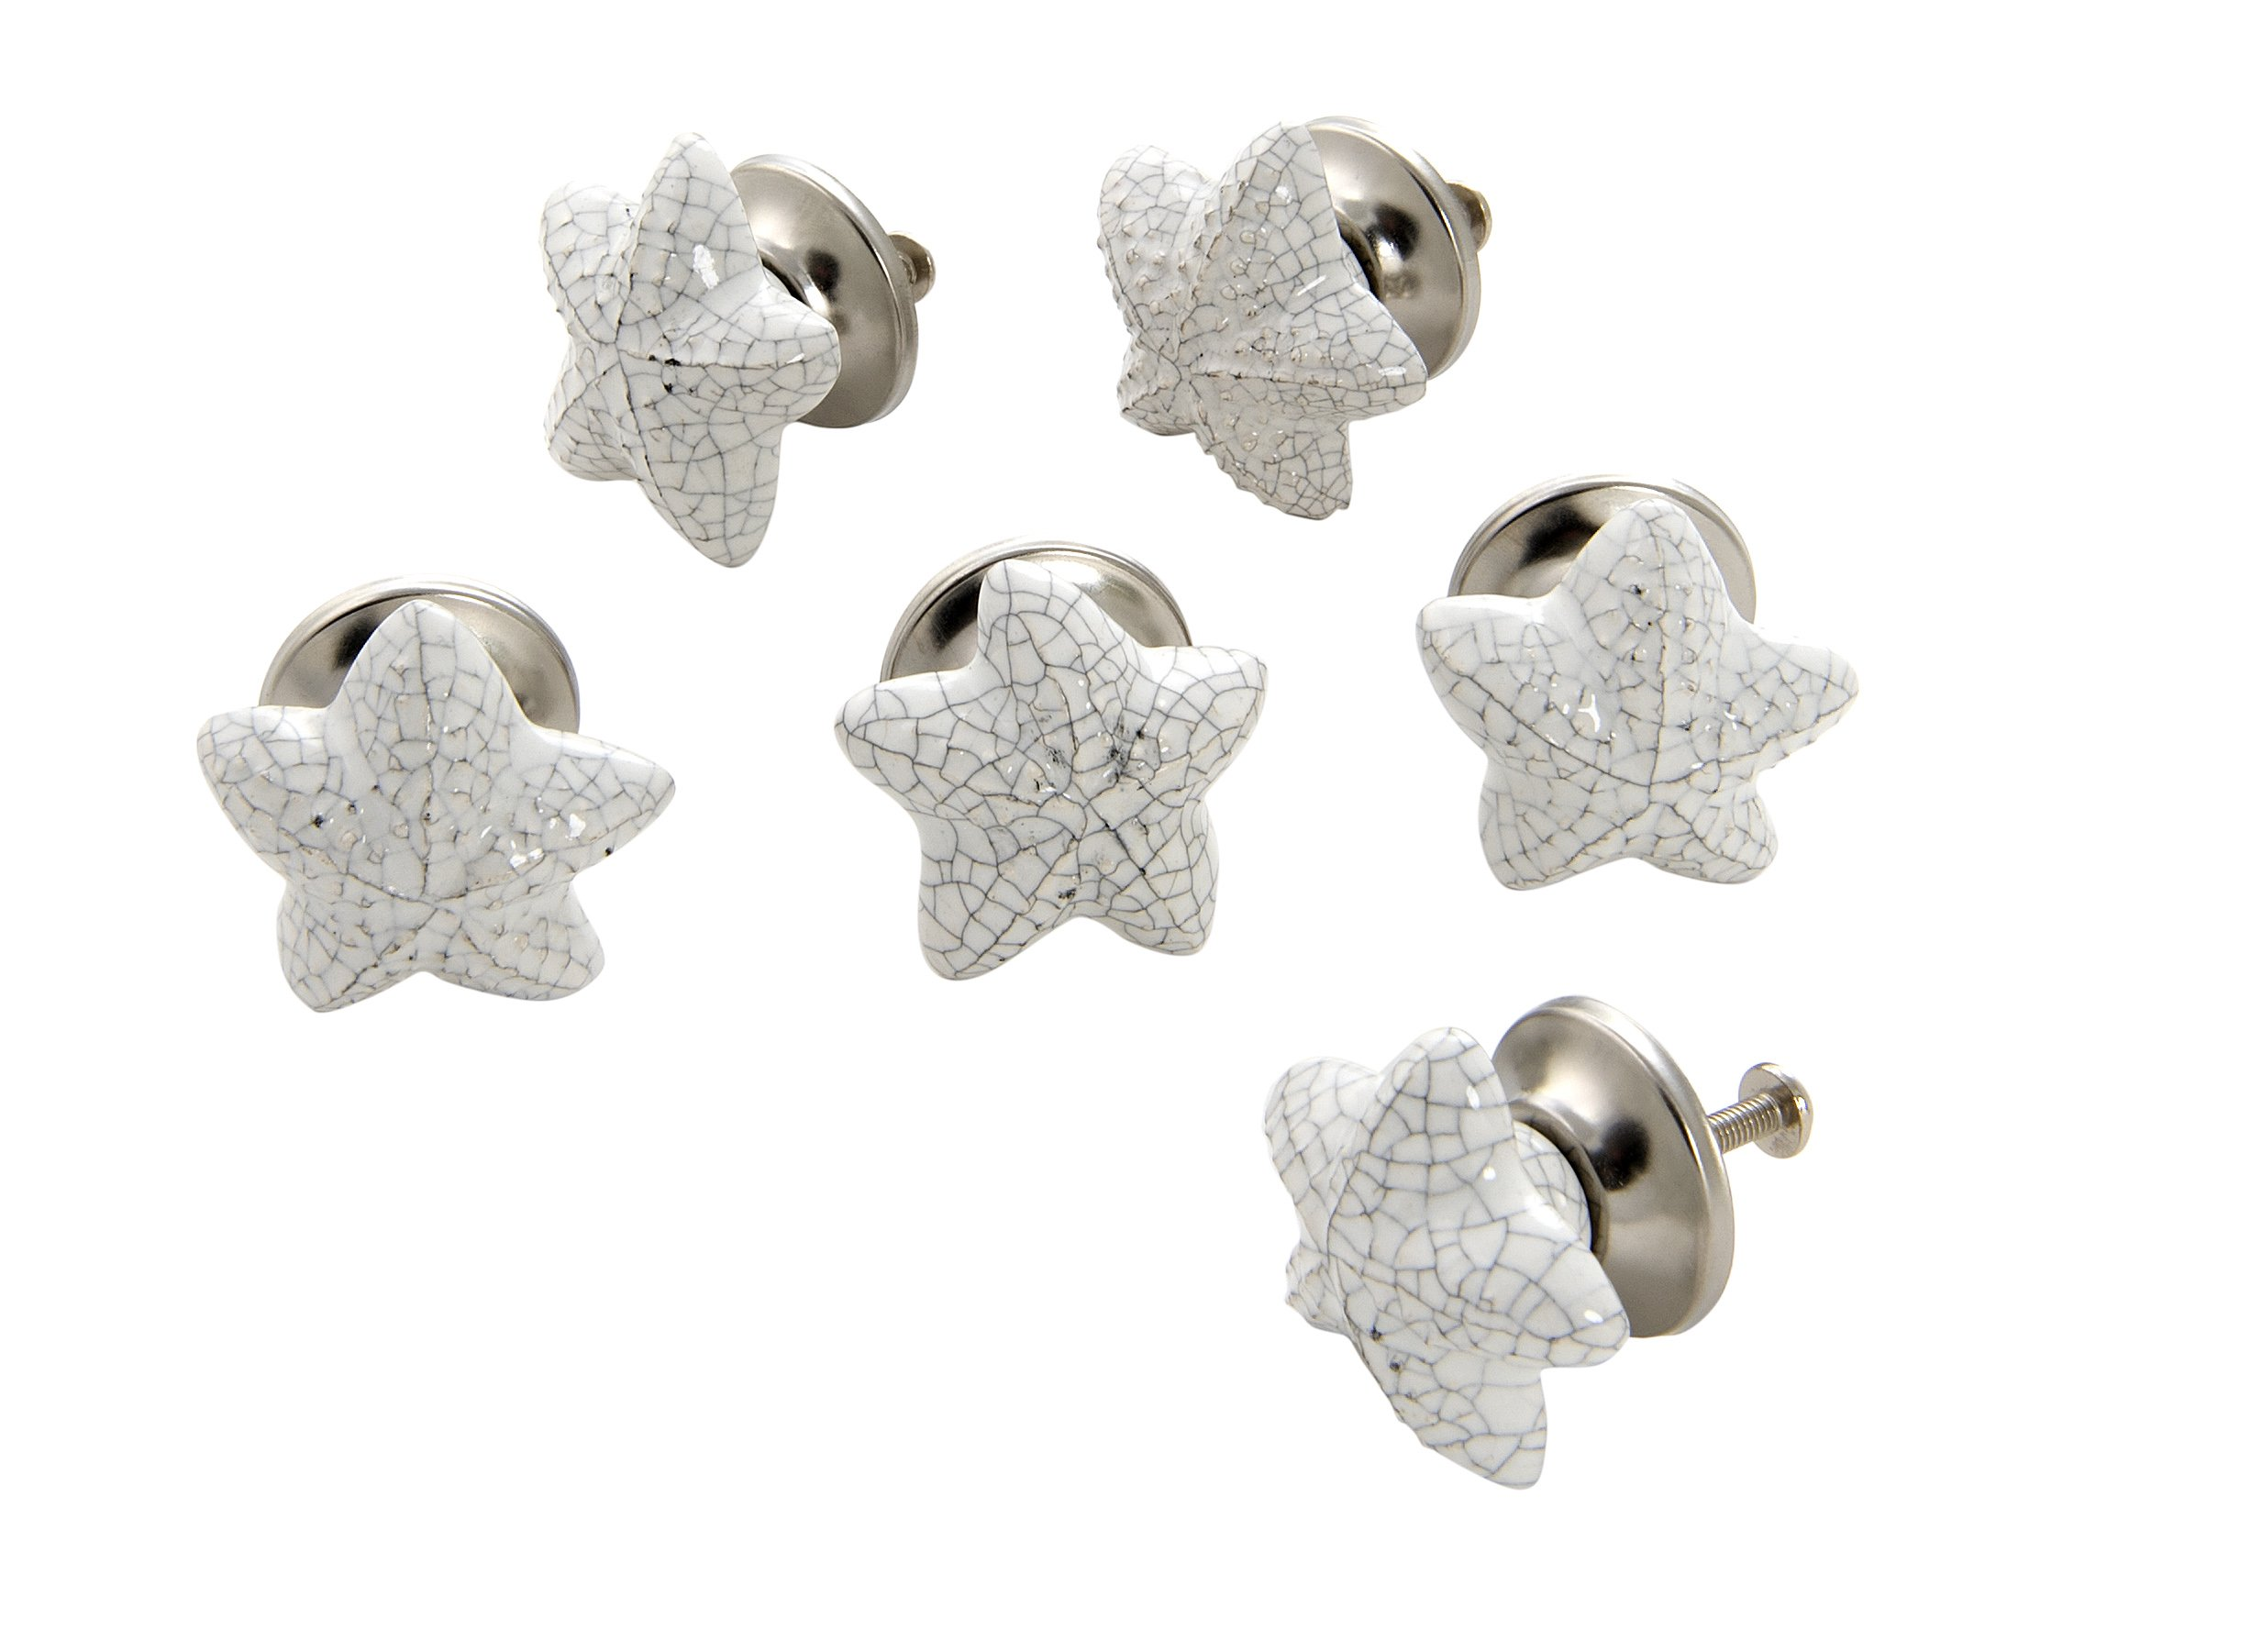 Dritz Home 47014A Ceramic Starfish Knob Handcrafted Knobs for Cabinets & Drawers